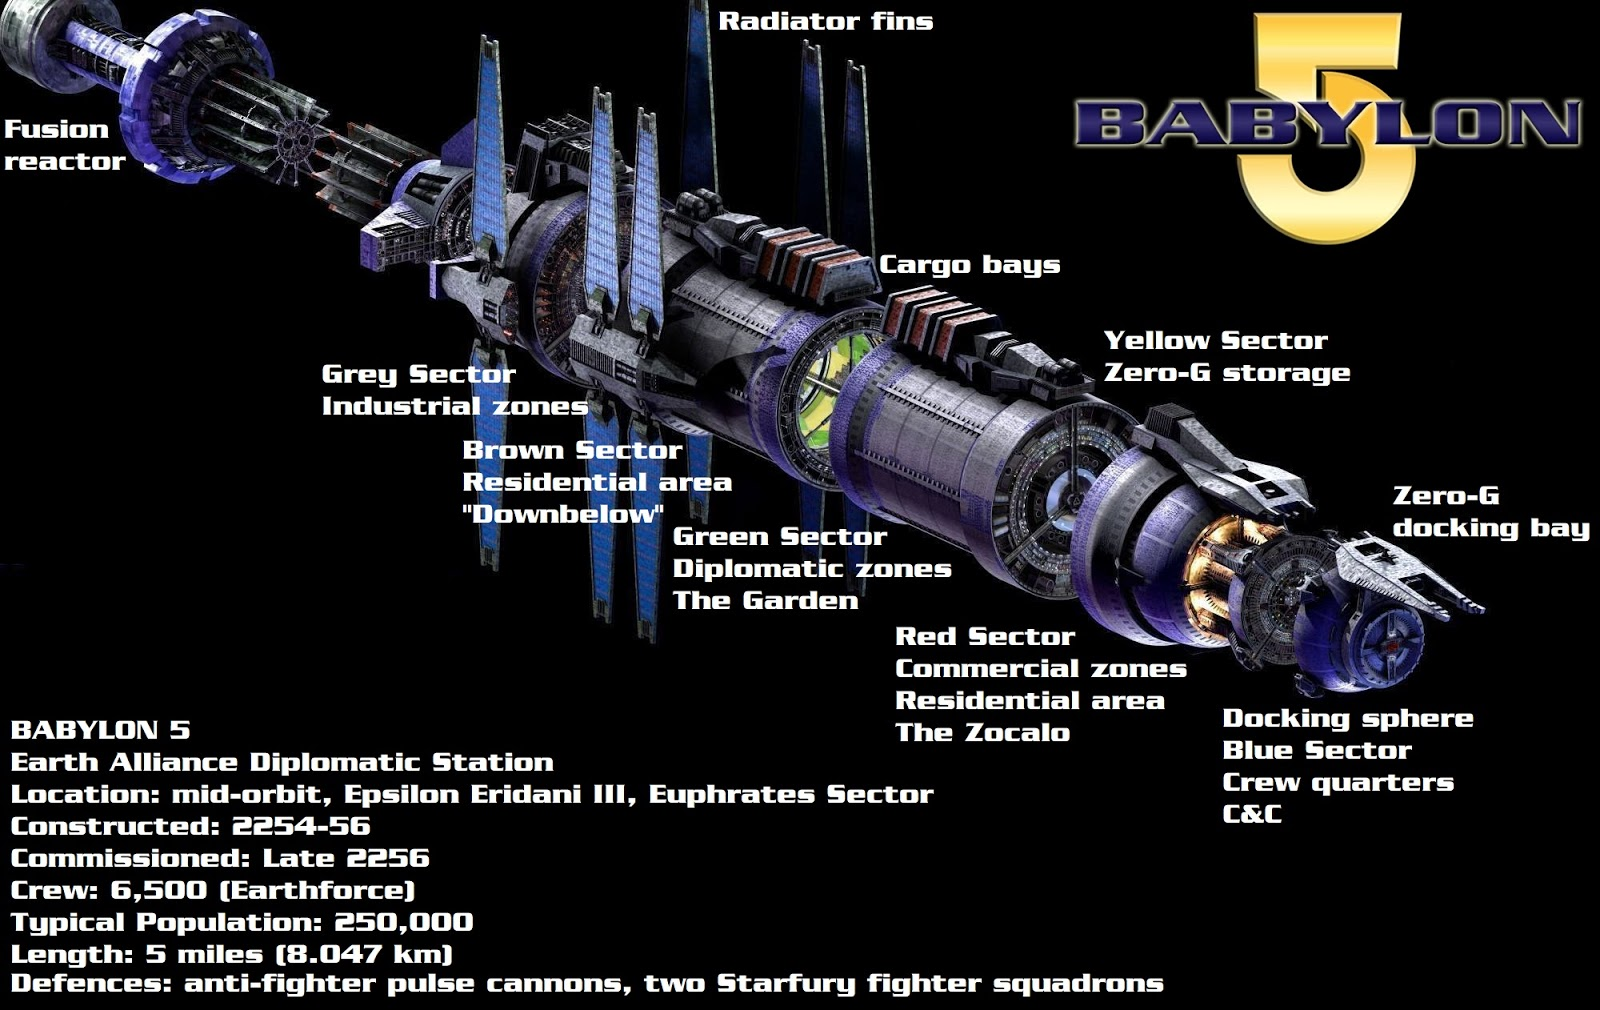 Dark Light Diagram Auto Electrical Wiring Detector Circuit The Wertzone Babylon 5 Viewing Order Chronology Switch